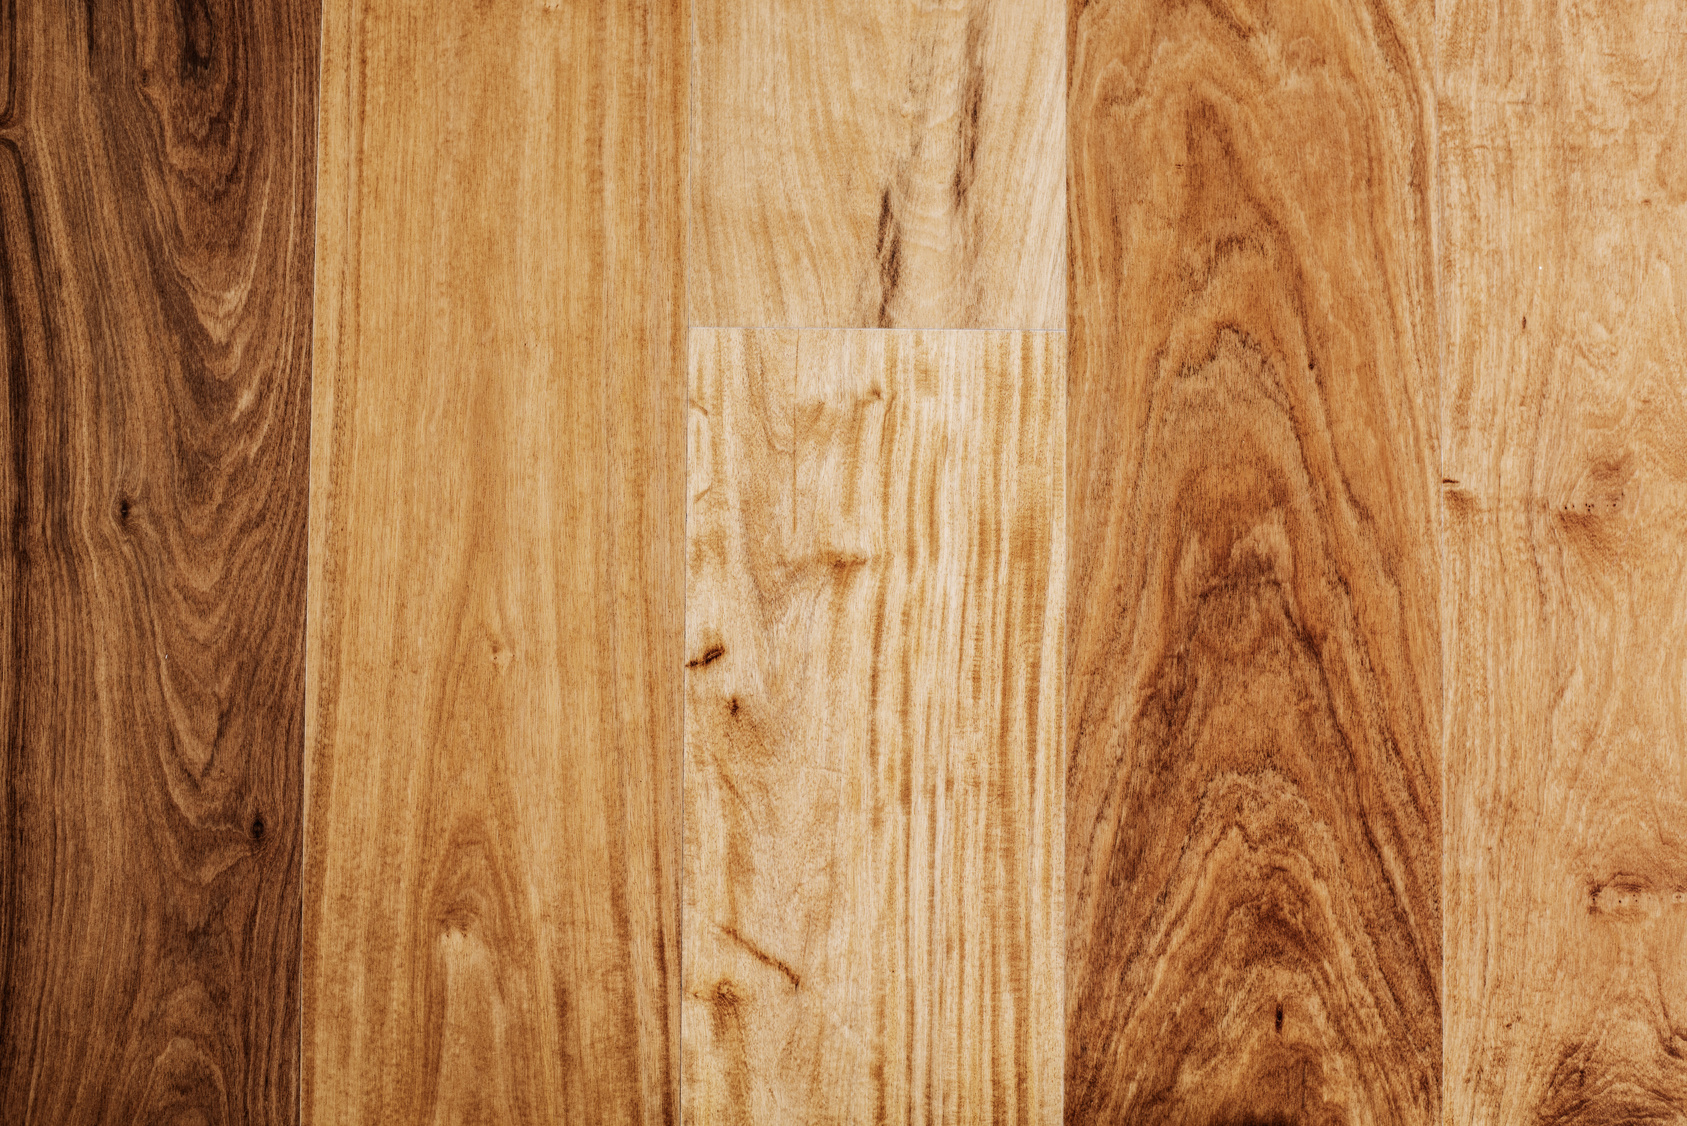 Hardwood And Softwood Trees ~ Softwood vs hardwood